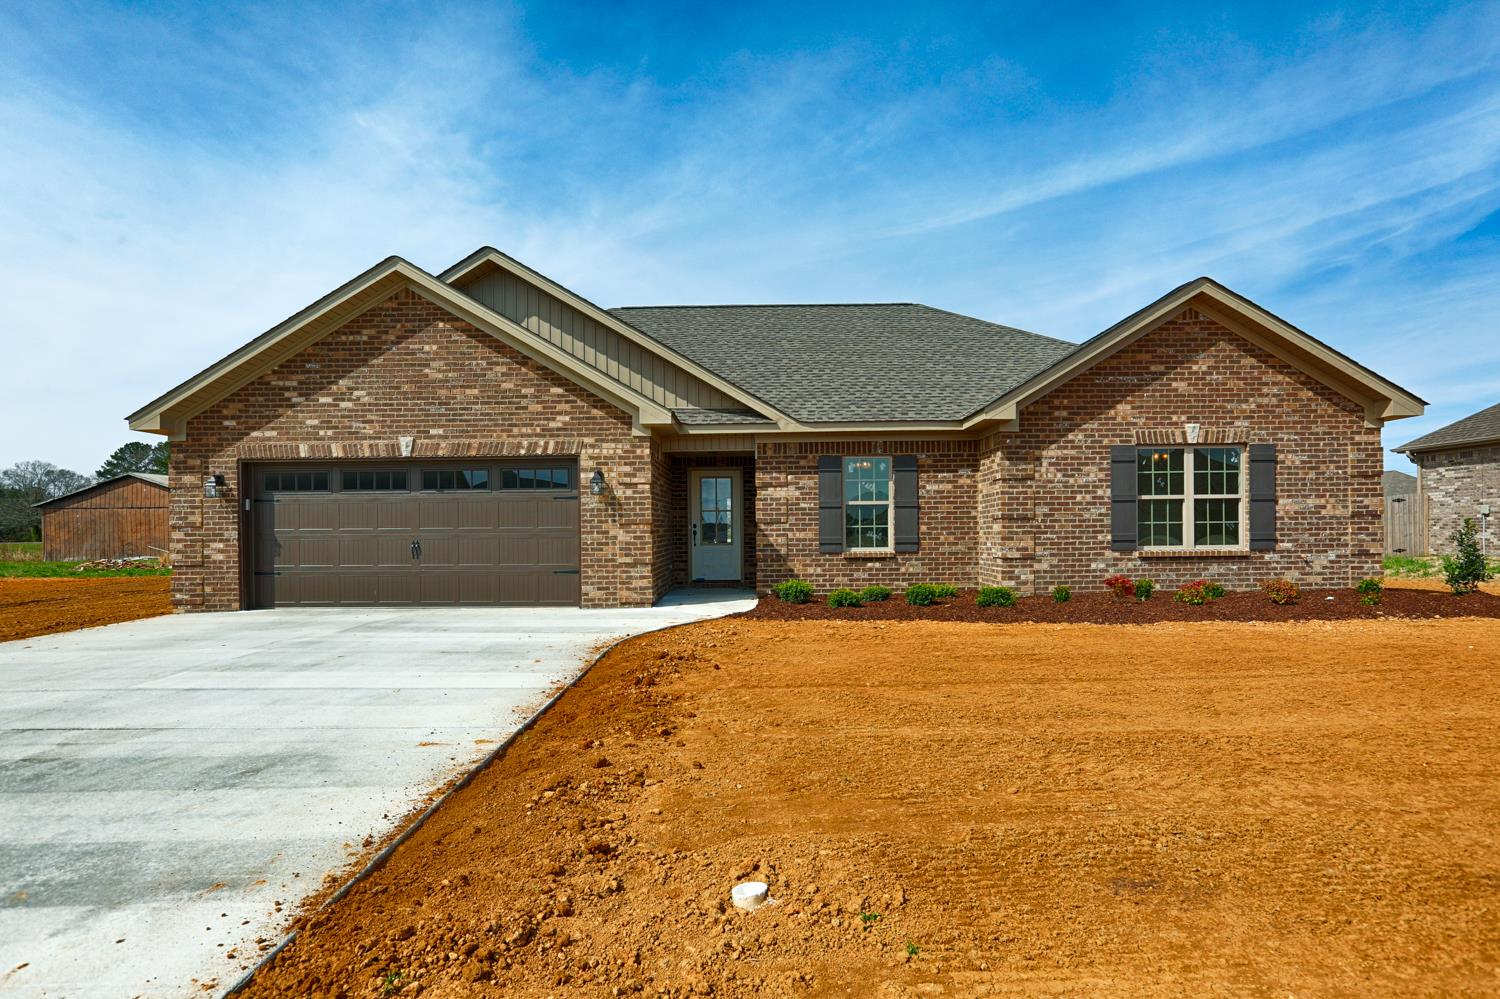 24567 Bekah Lane, Athens, Alabama